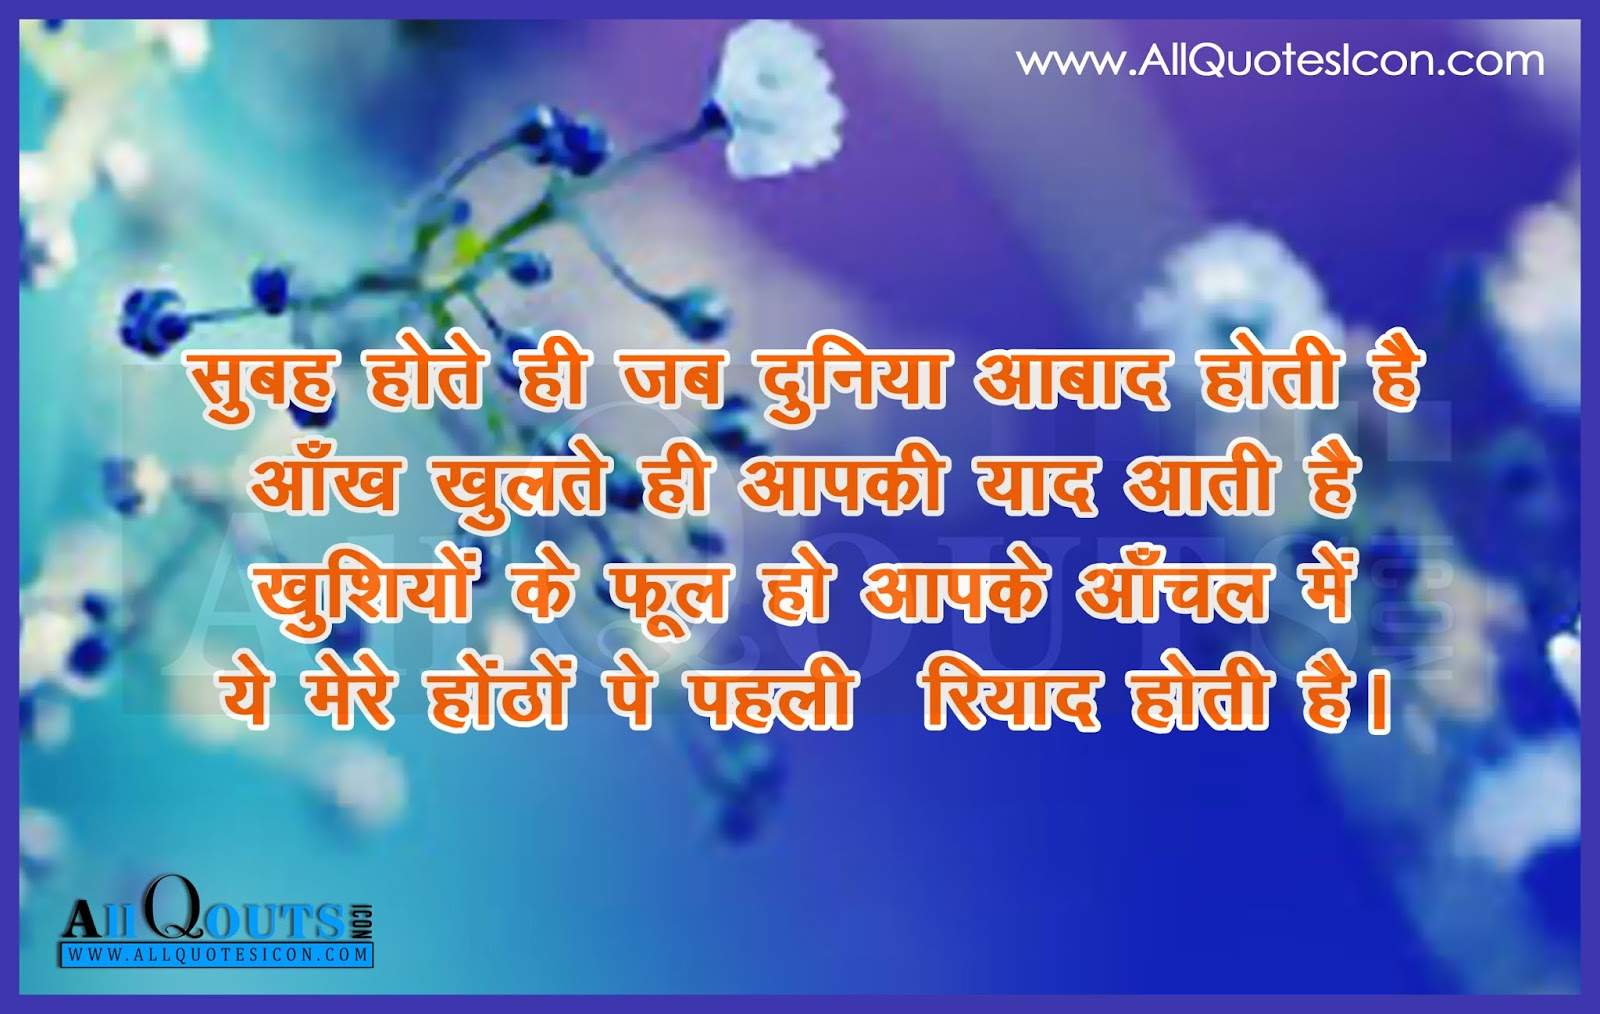 Friendship quotes and sayings in hindi hd wallpapers best thoughts hindi friendship quotes images motivation thoughts sayings kristyandbryce Image collections